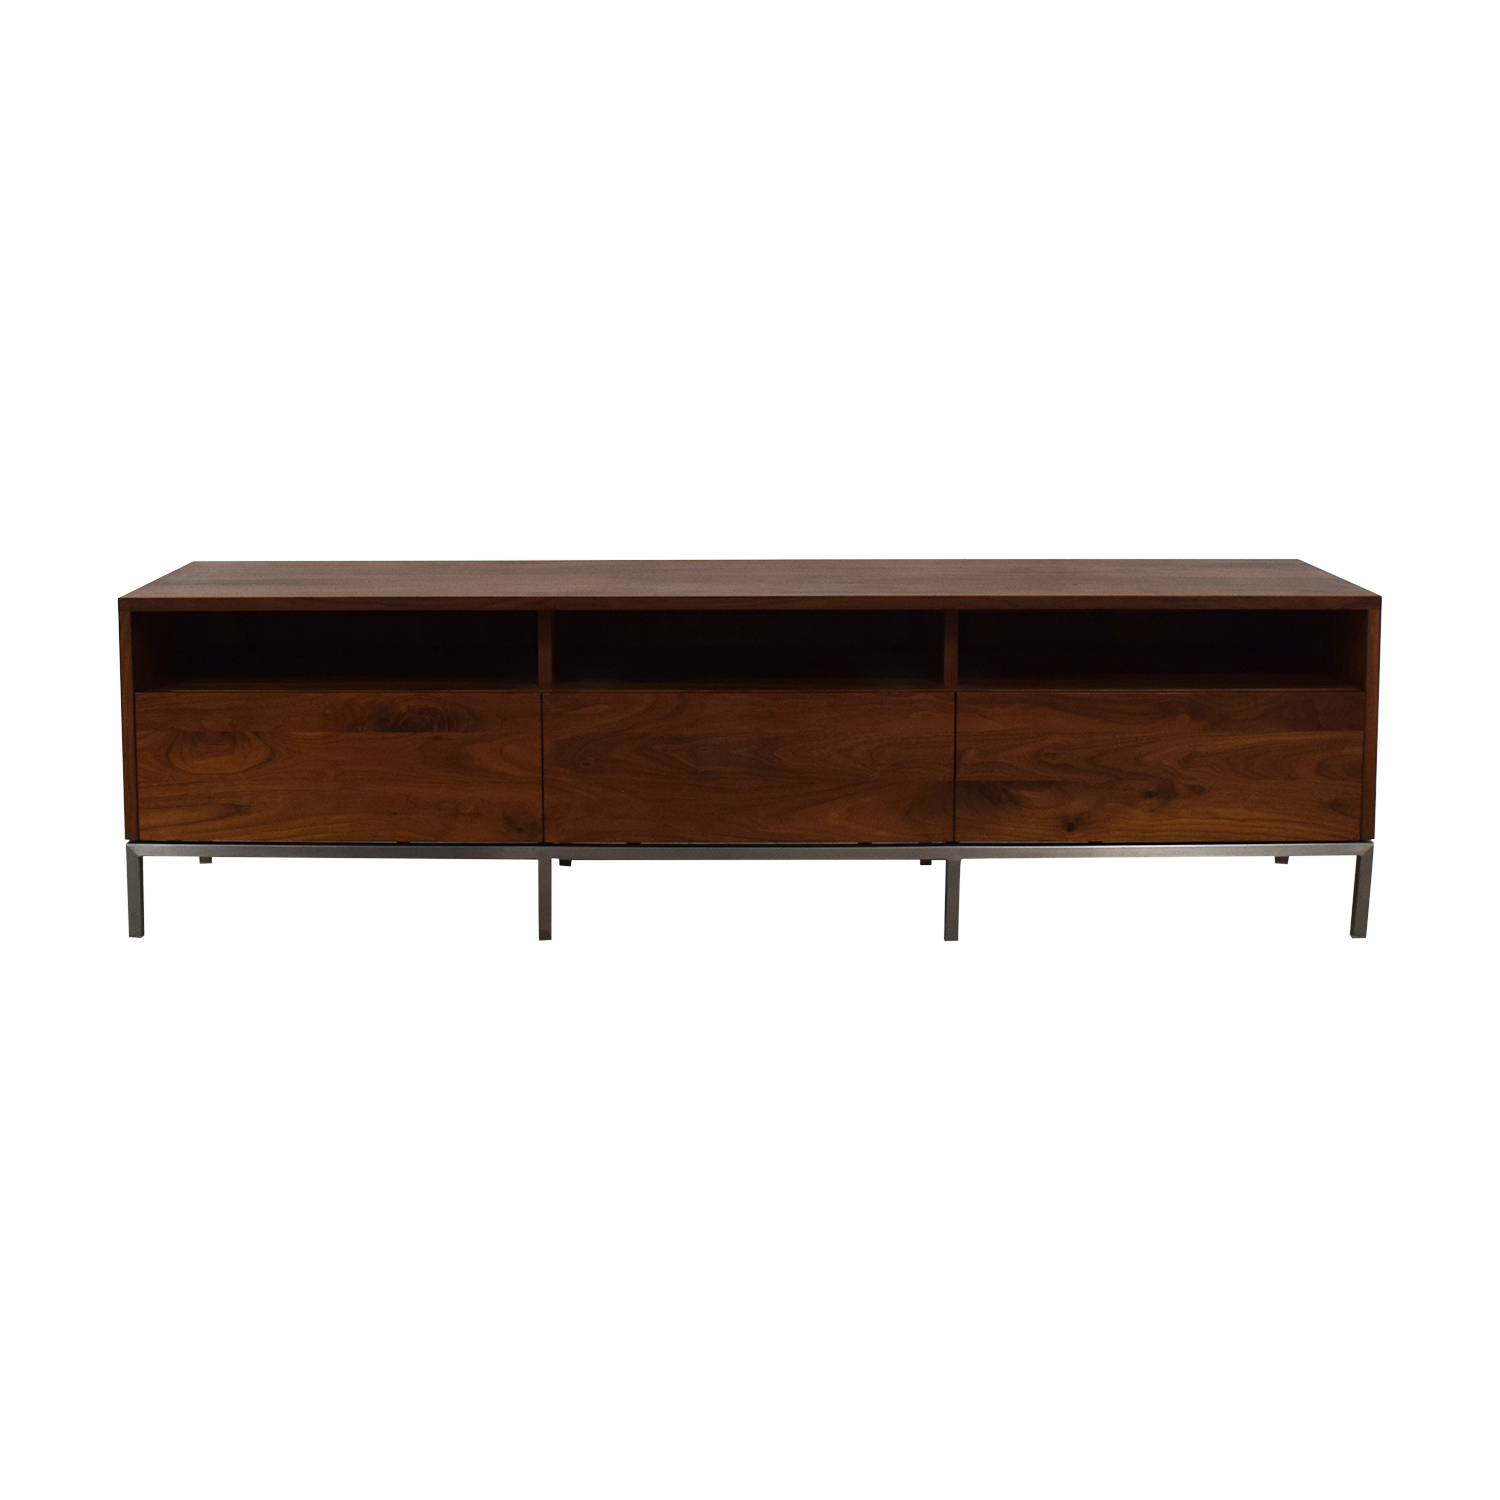 Crate & Barrel Pearson Media Console sale